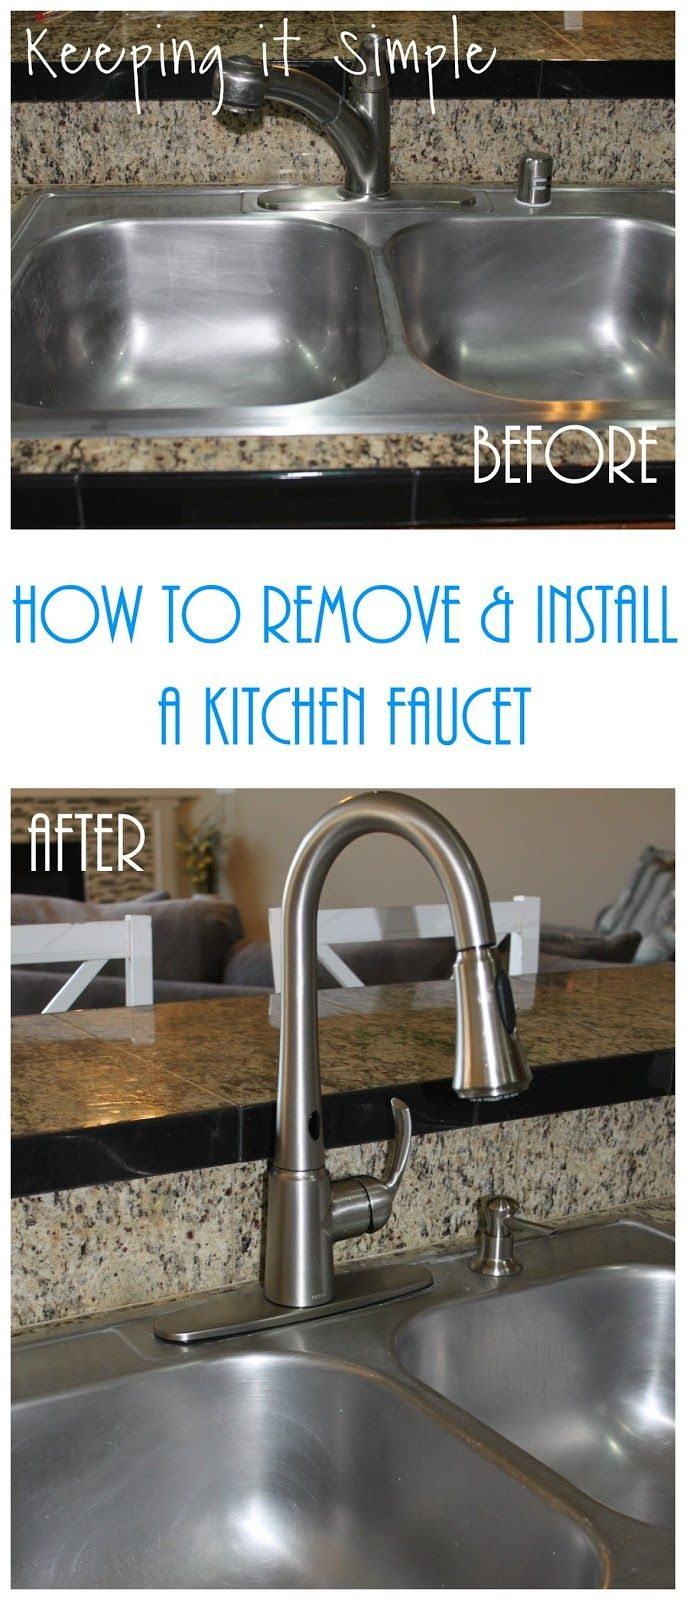 How To Remove And Install A Kitchen Moen Faucet Kitchen Faucet Moen Kitchen Faucet Moen Faucets